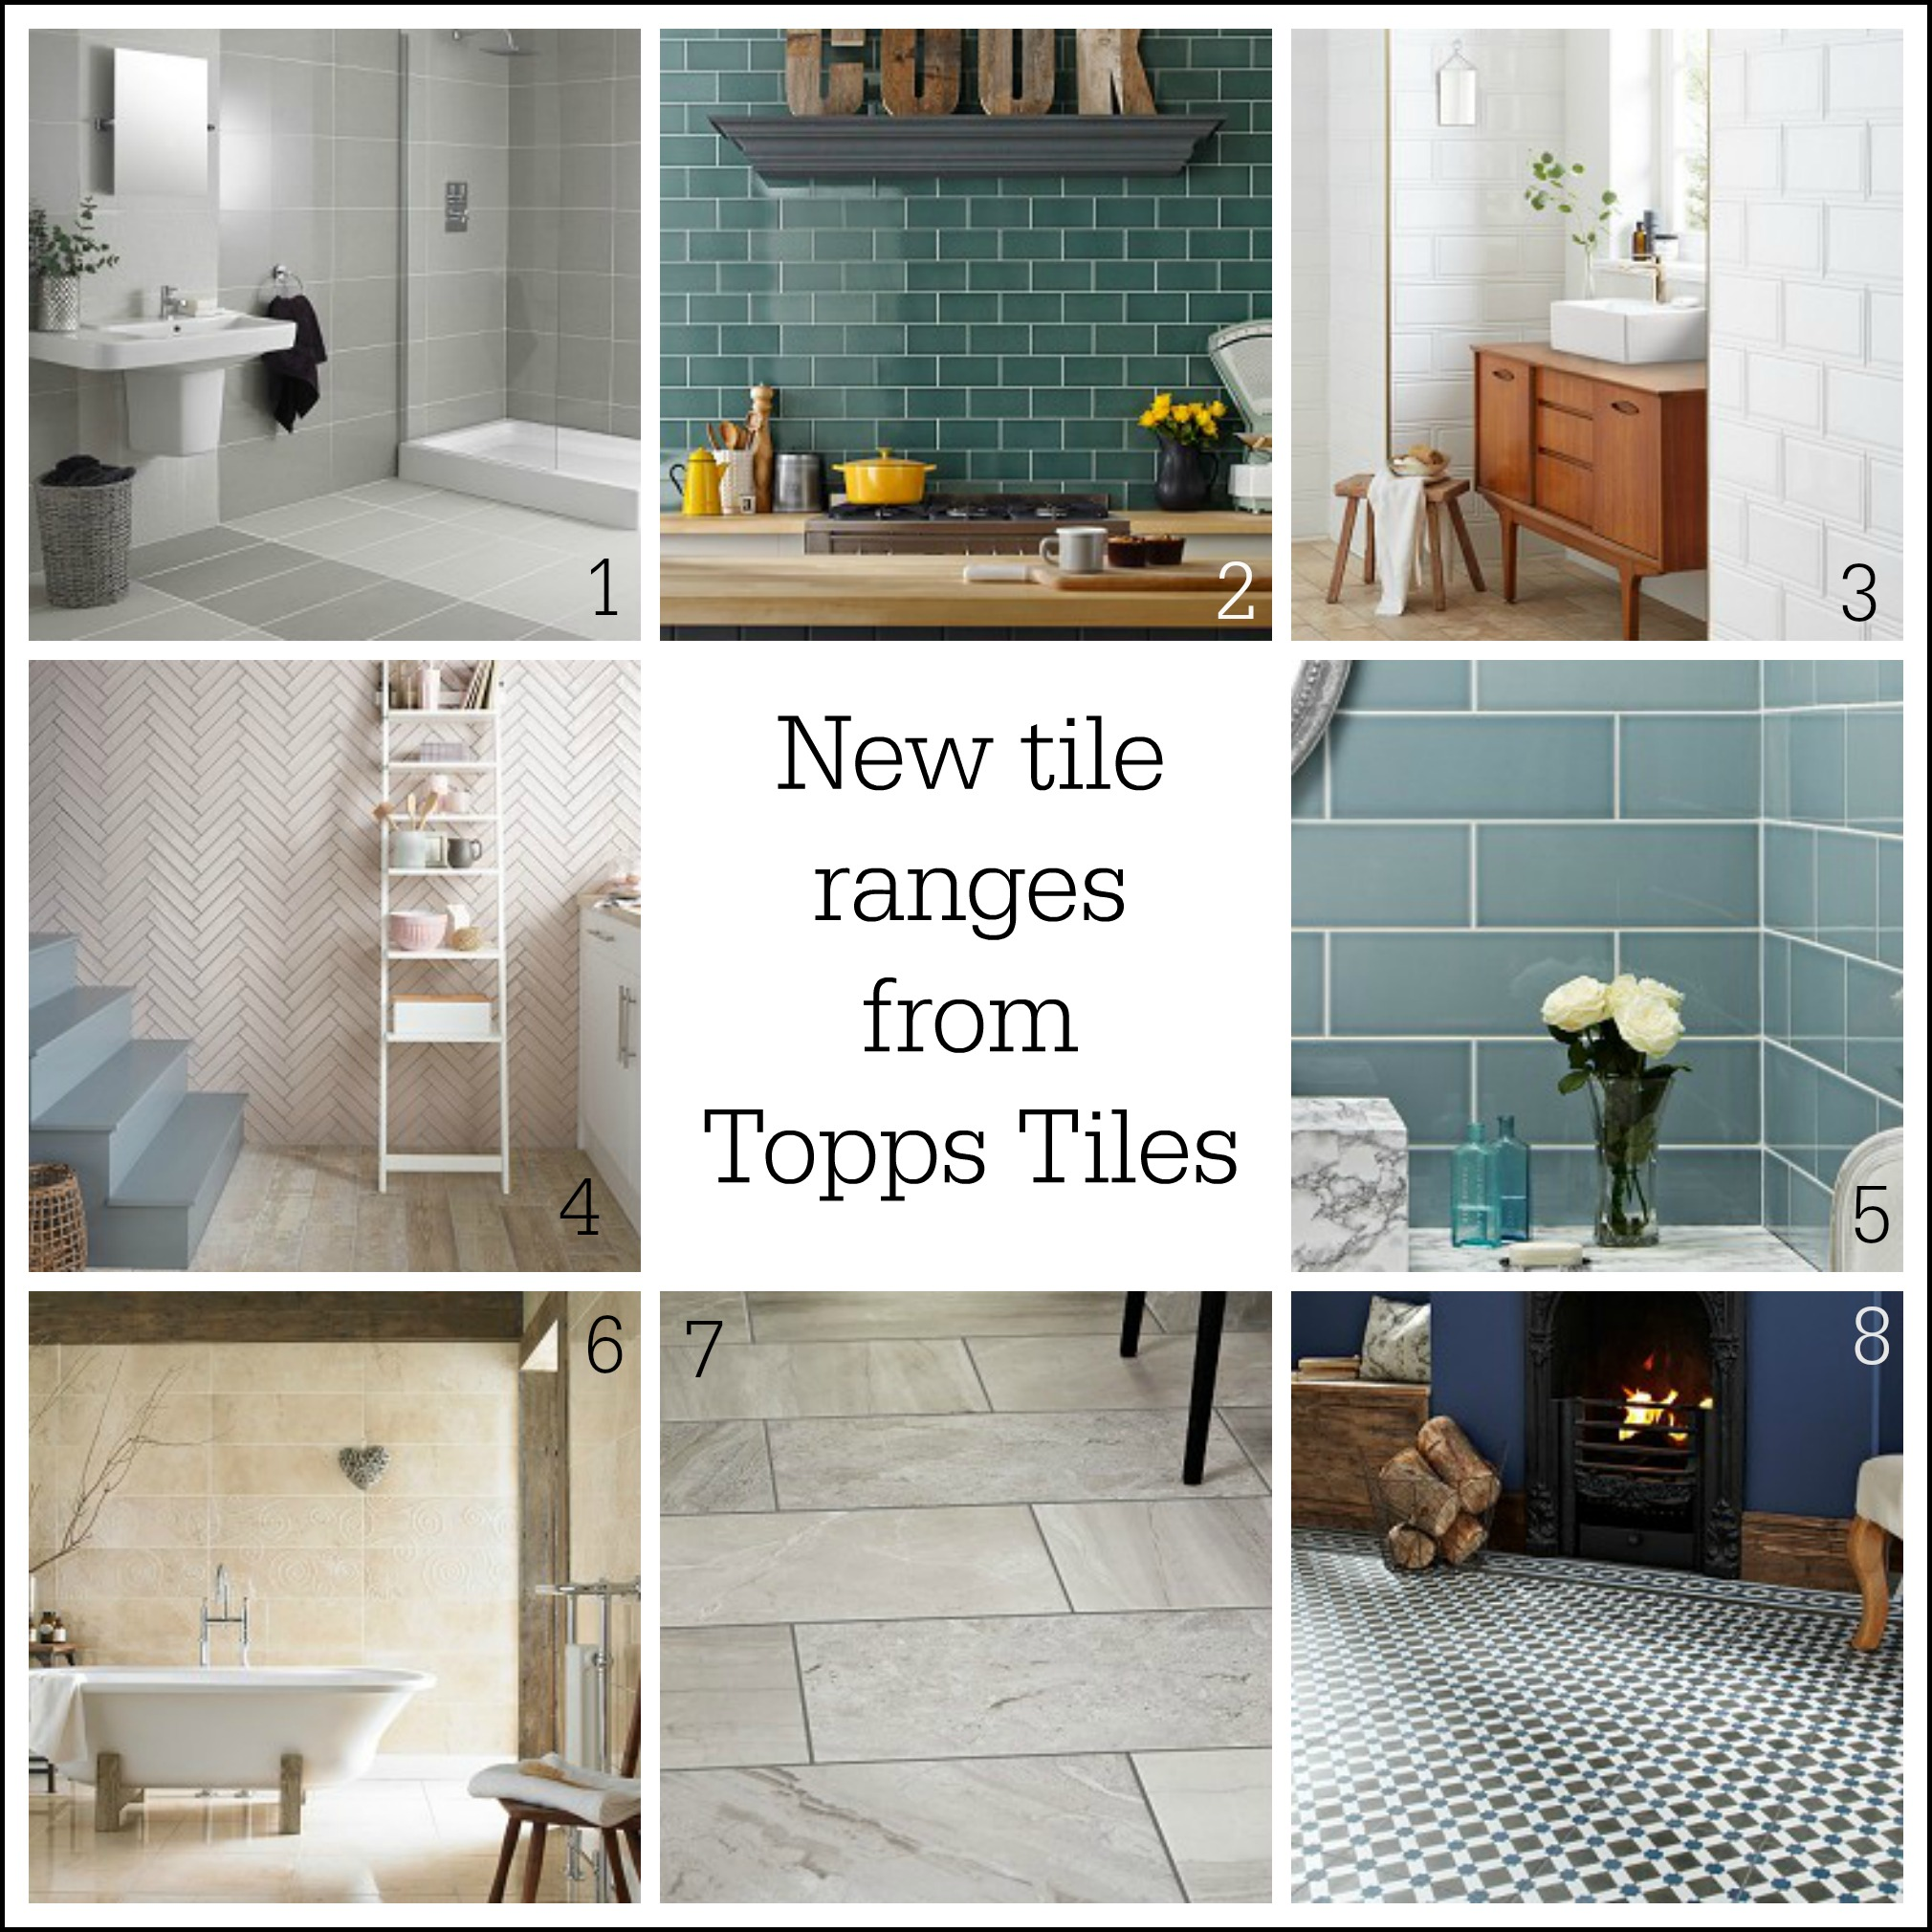 Summer tiling projects tile your floor or wall for less fresh fresh design home summer tiling projects dailygadgetfo Images